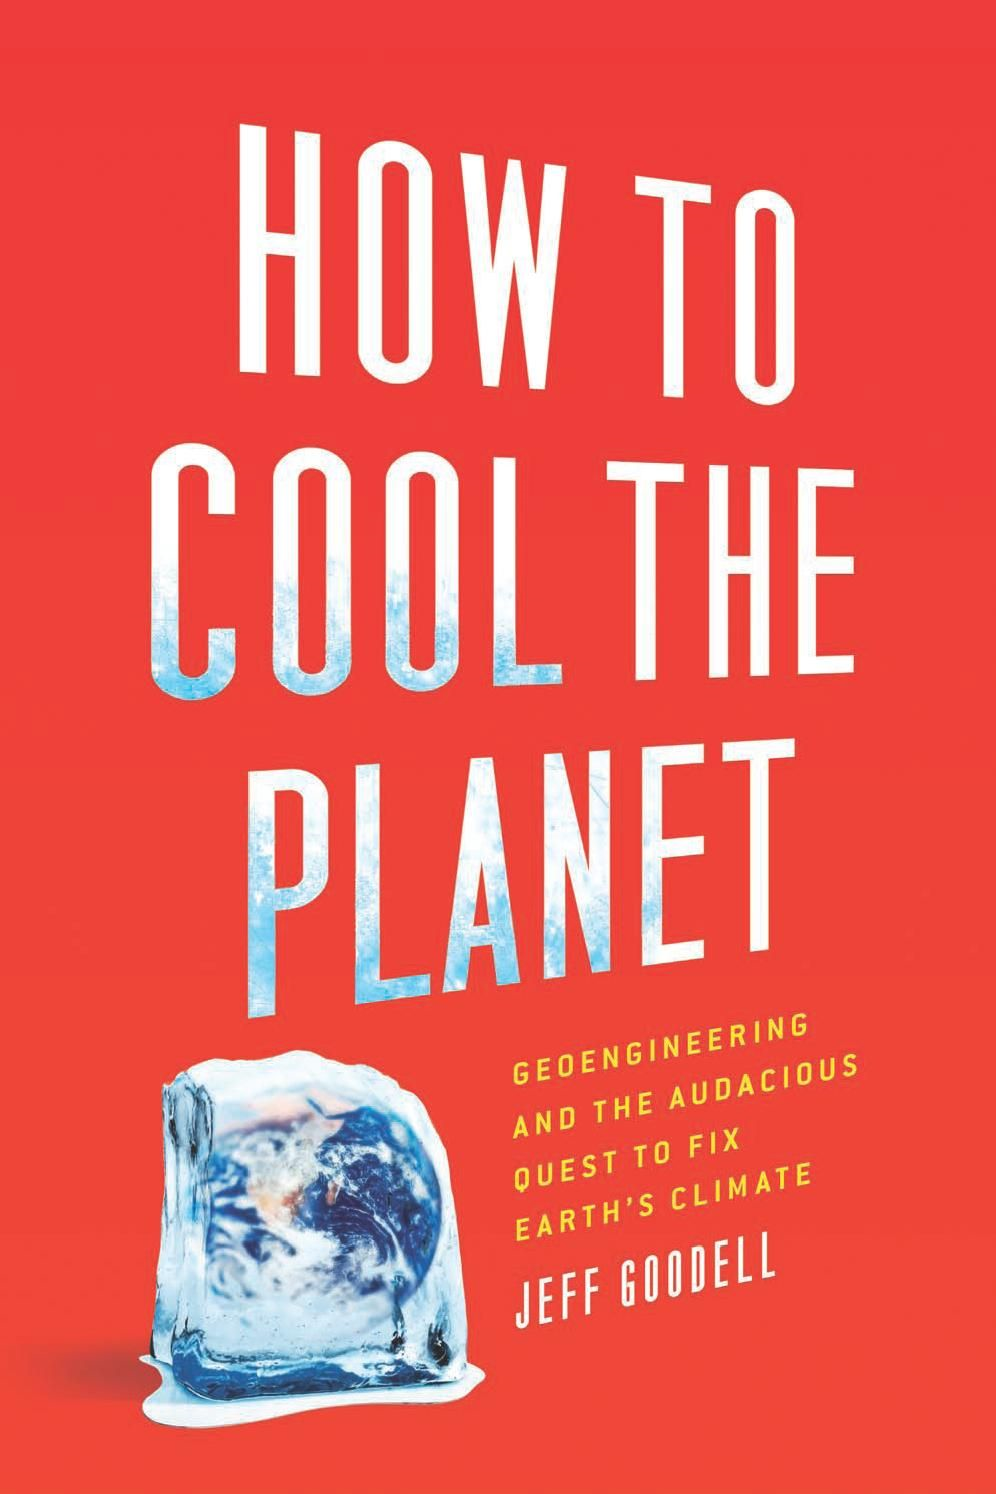 How to Cool the Planet